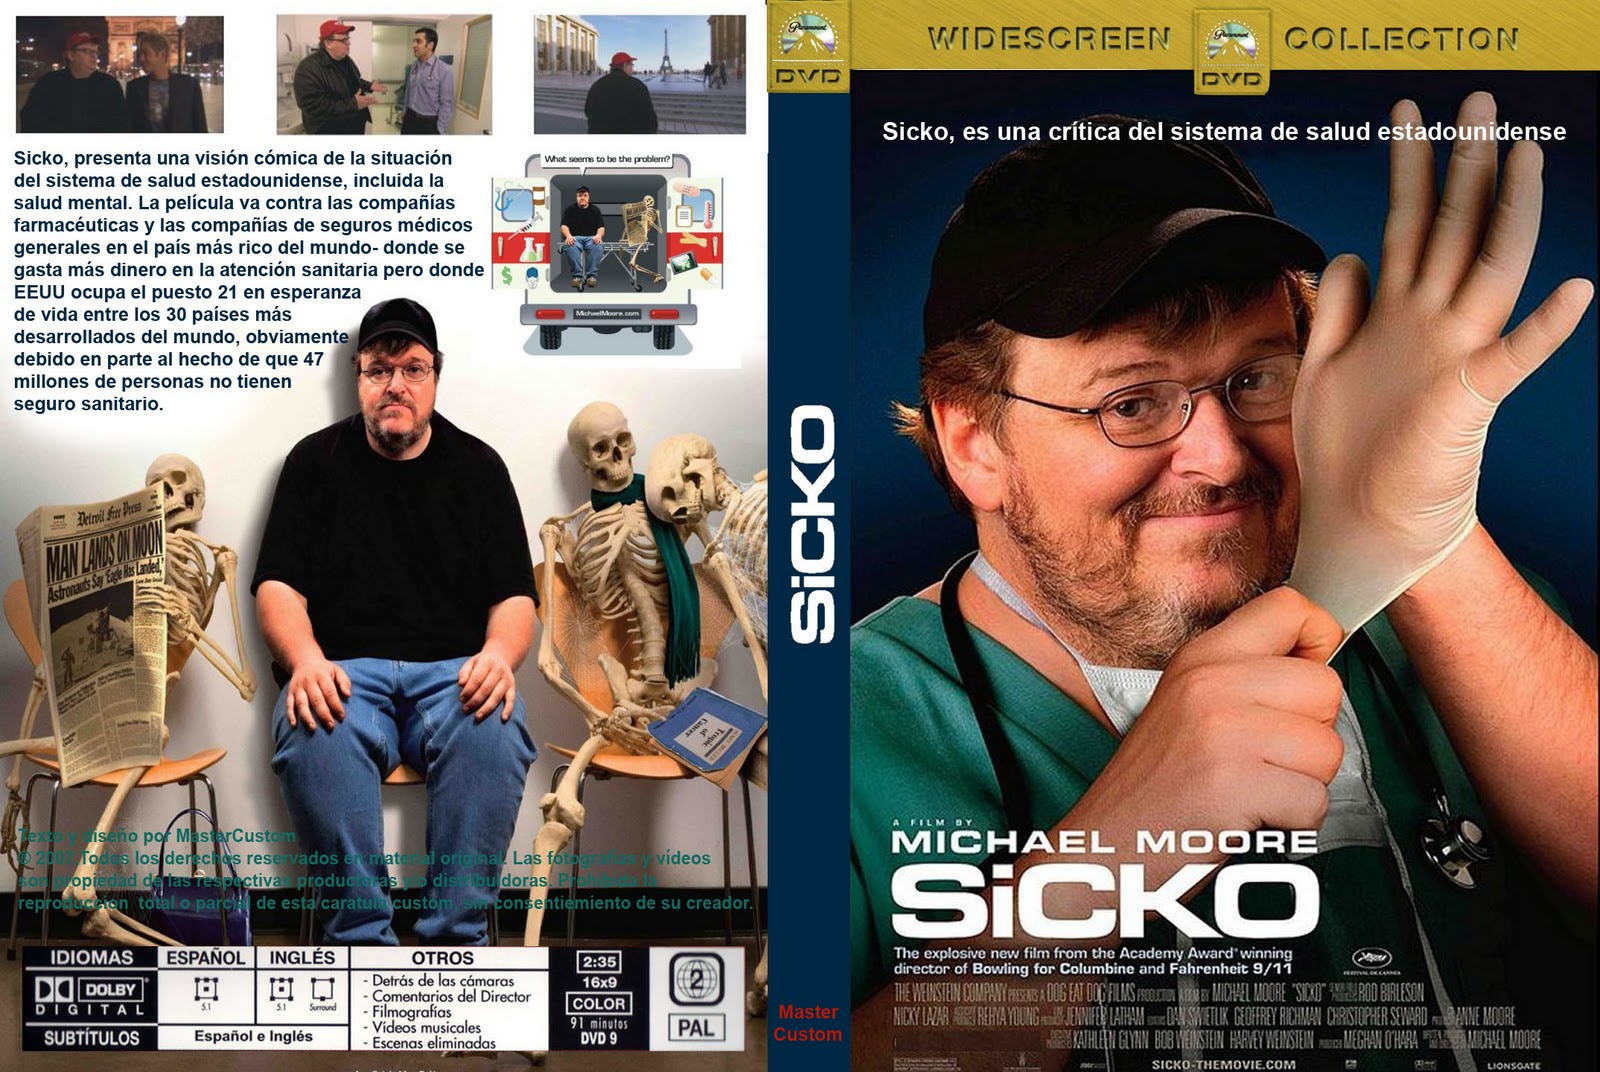 Sicko by michael moore - Essay Example